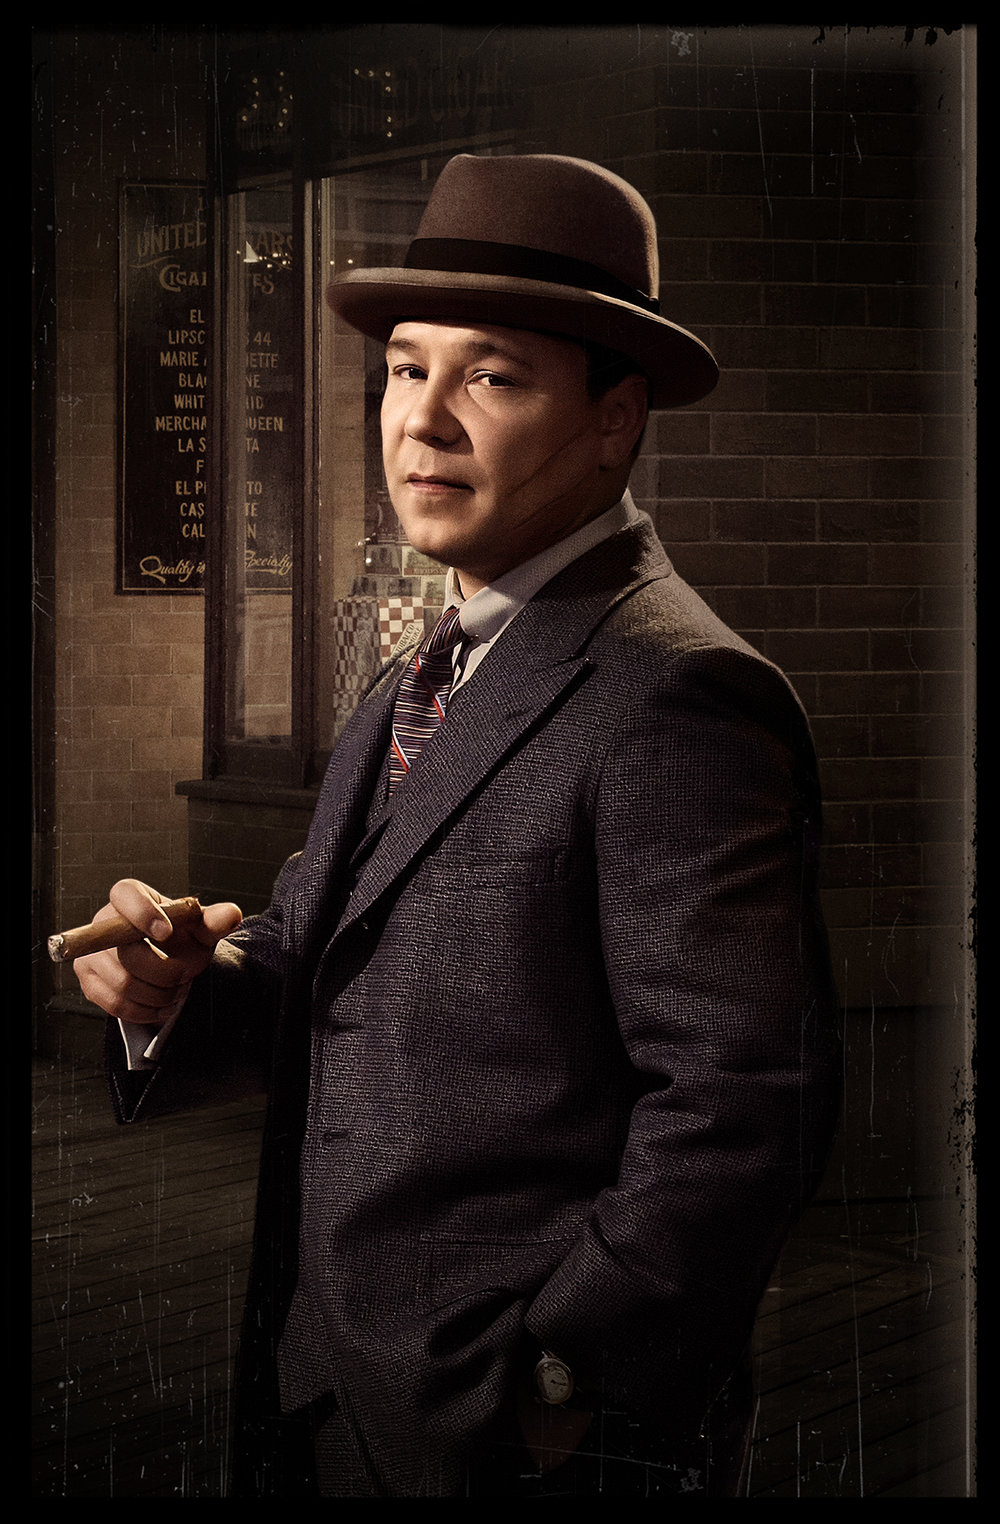 HBO - Boardwalk Empire - Stephen Graham as Al Capone - Brooklyn, NY